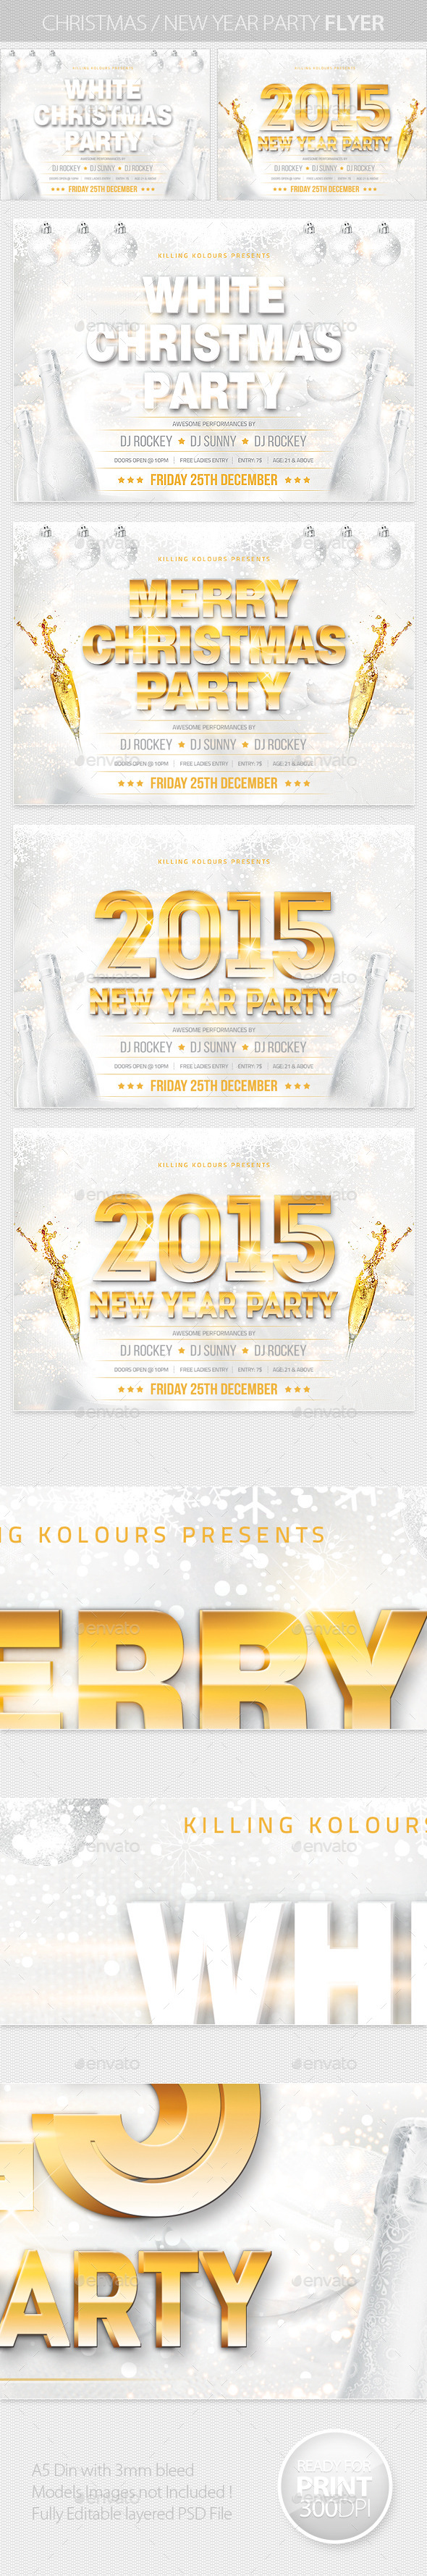 GraphicRiver Christmas New Year Party Flyer 9781509